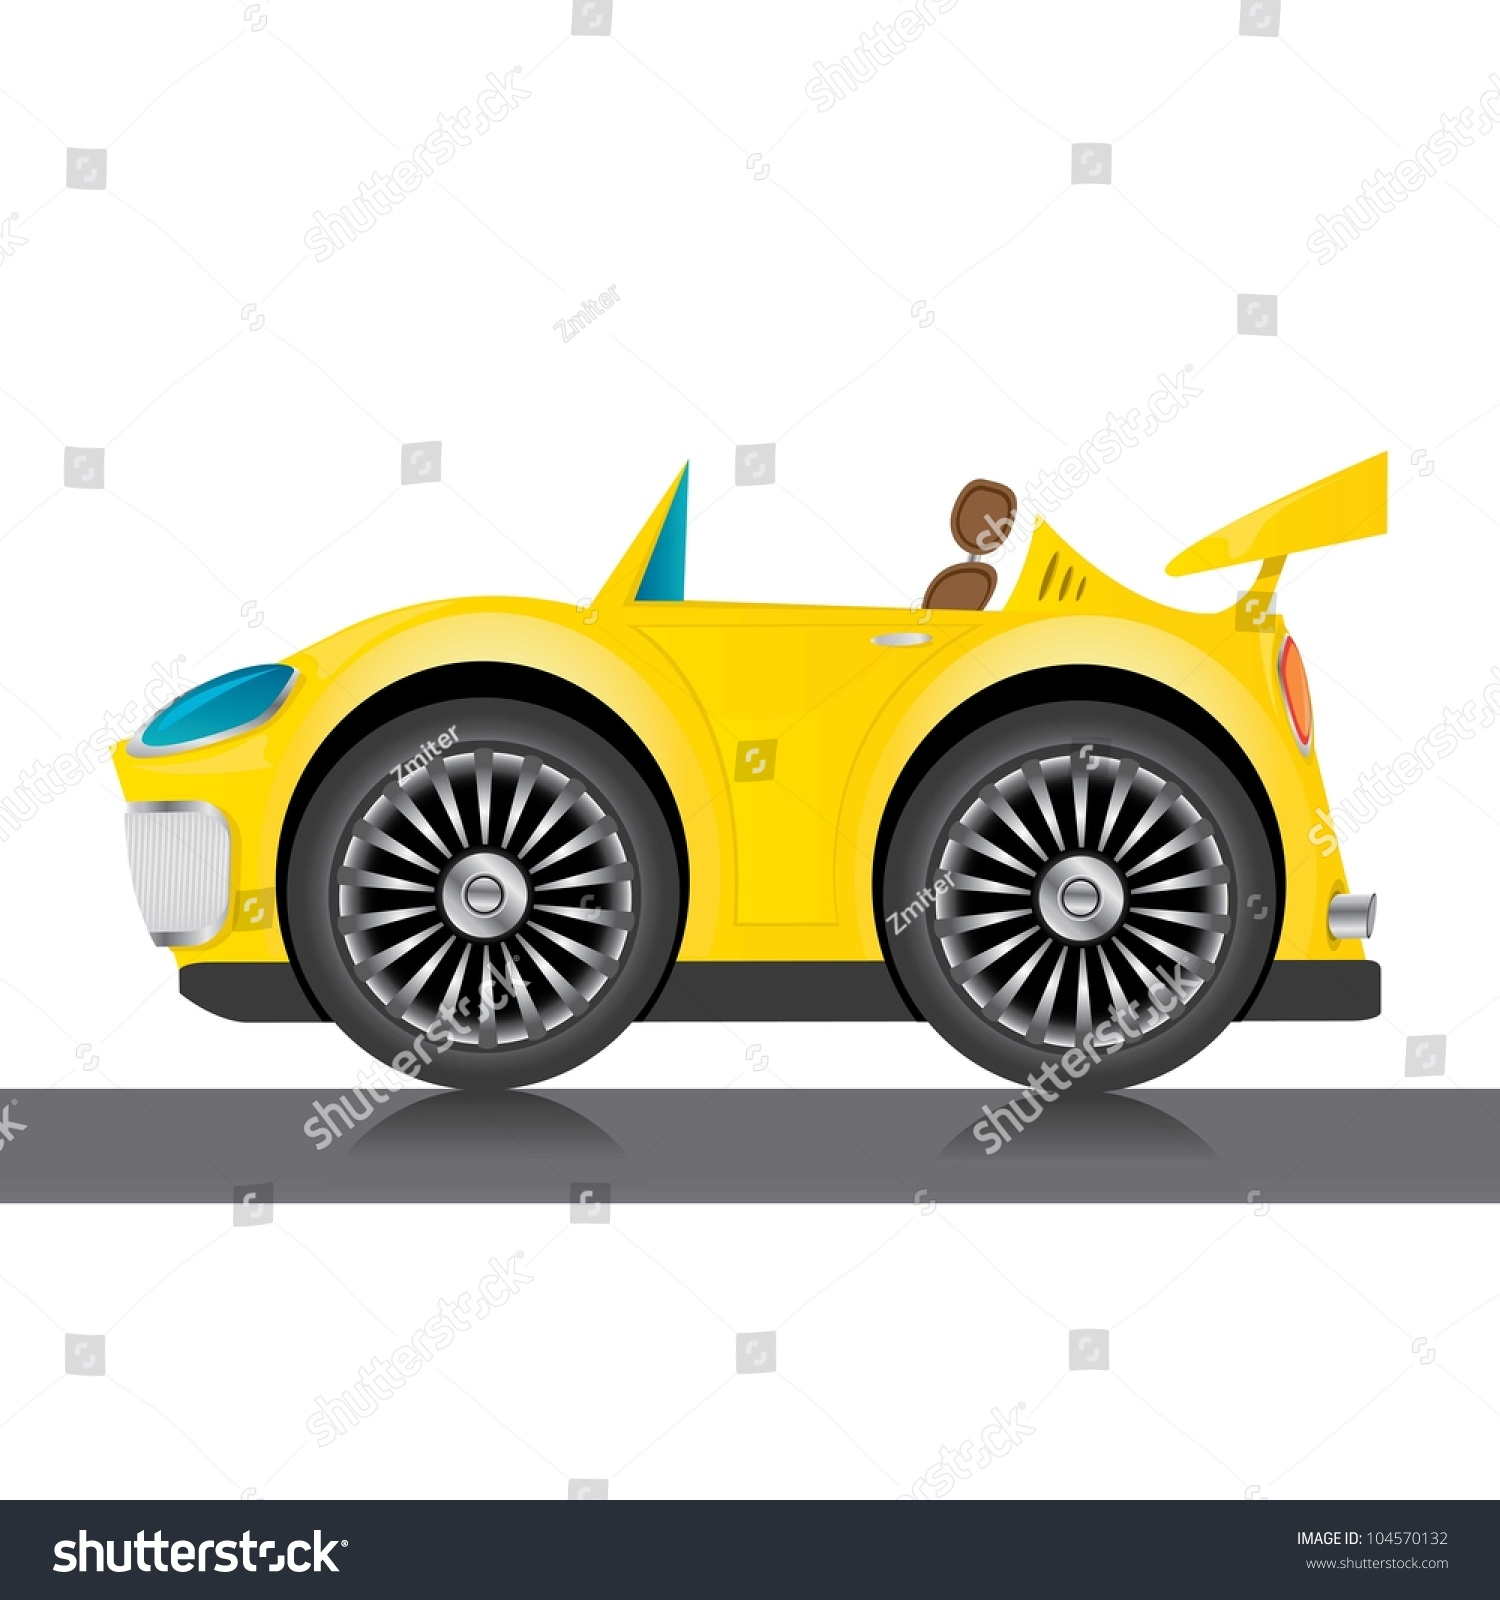 yellow car icon pictures to pin on pinterest thepinsta car vector image car vector icon